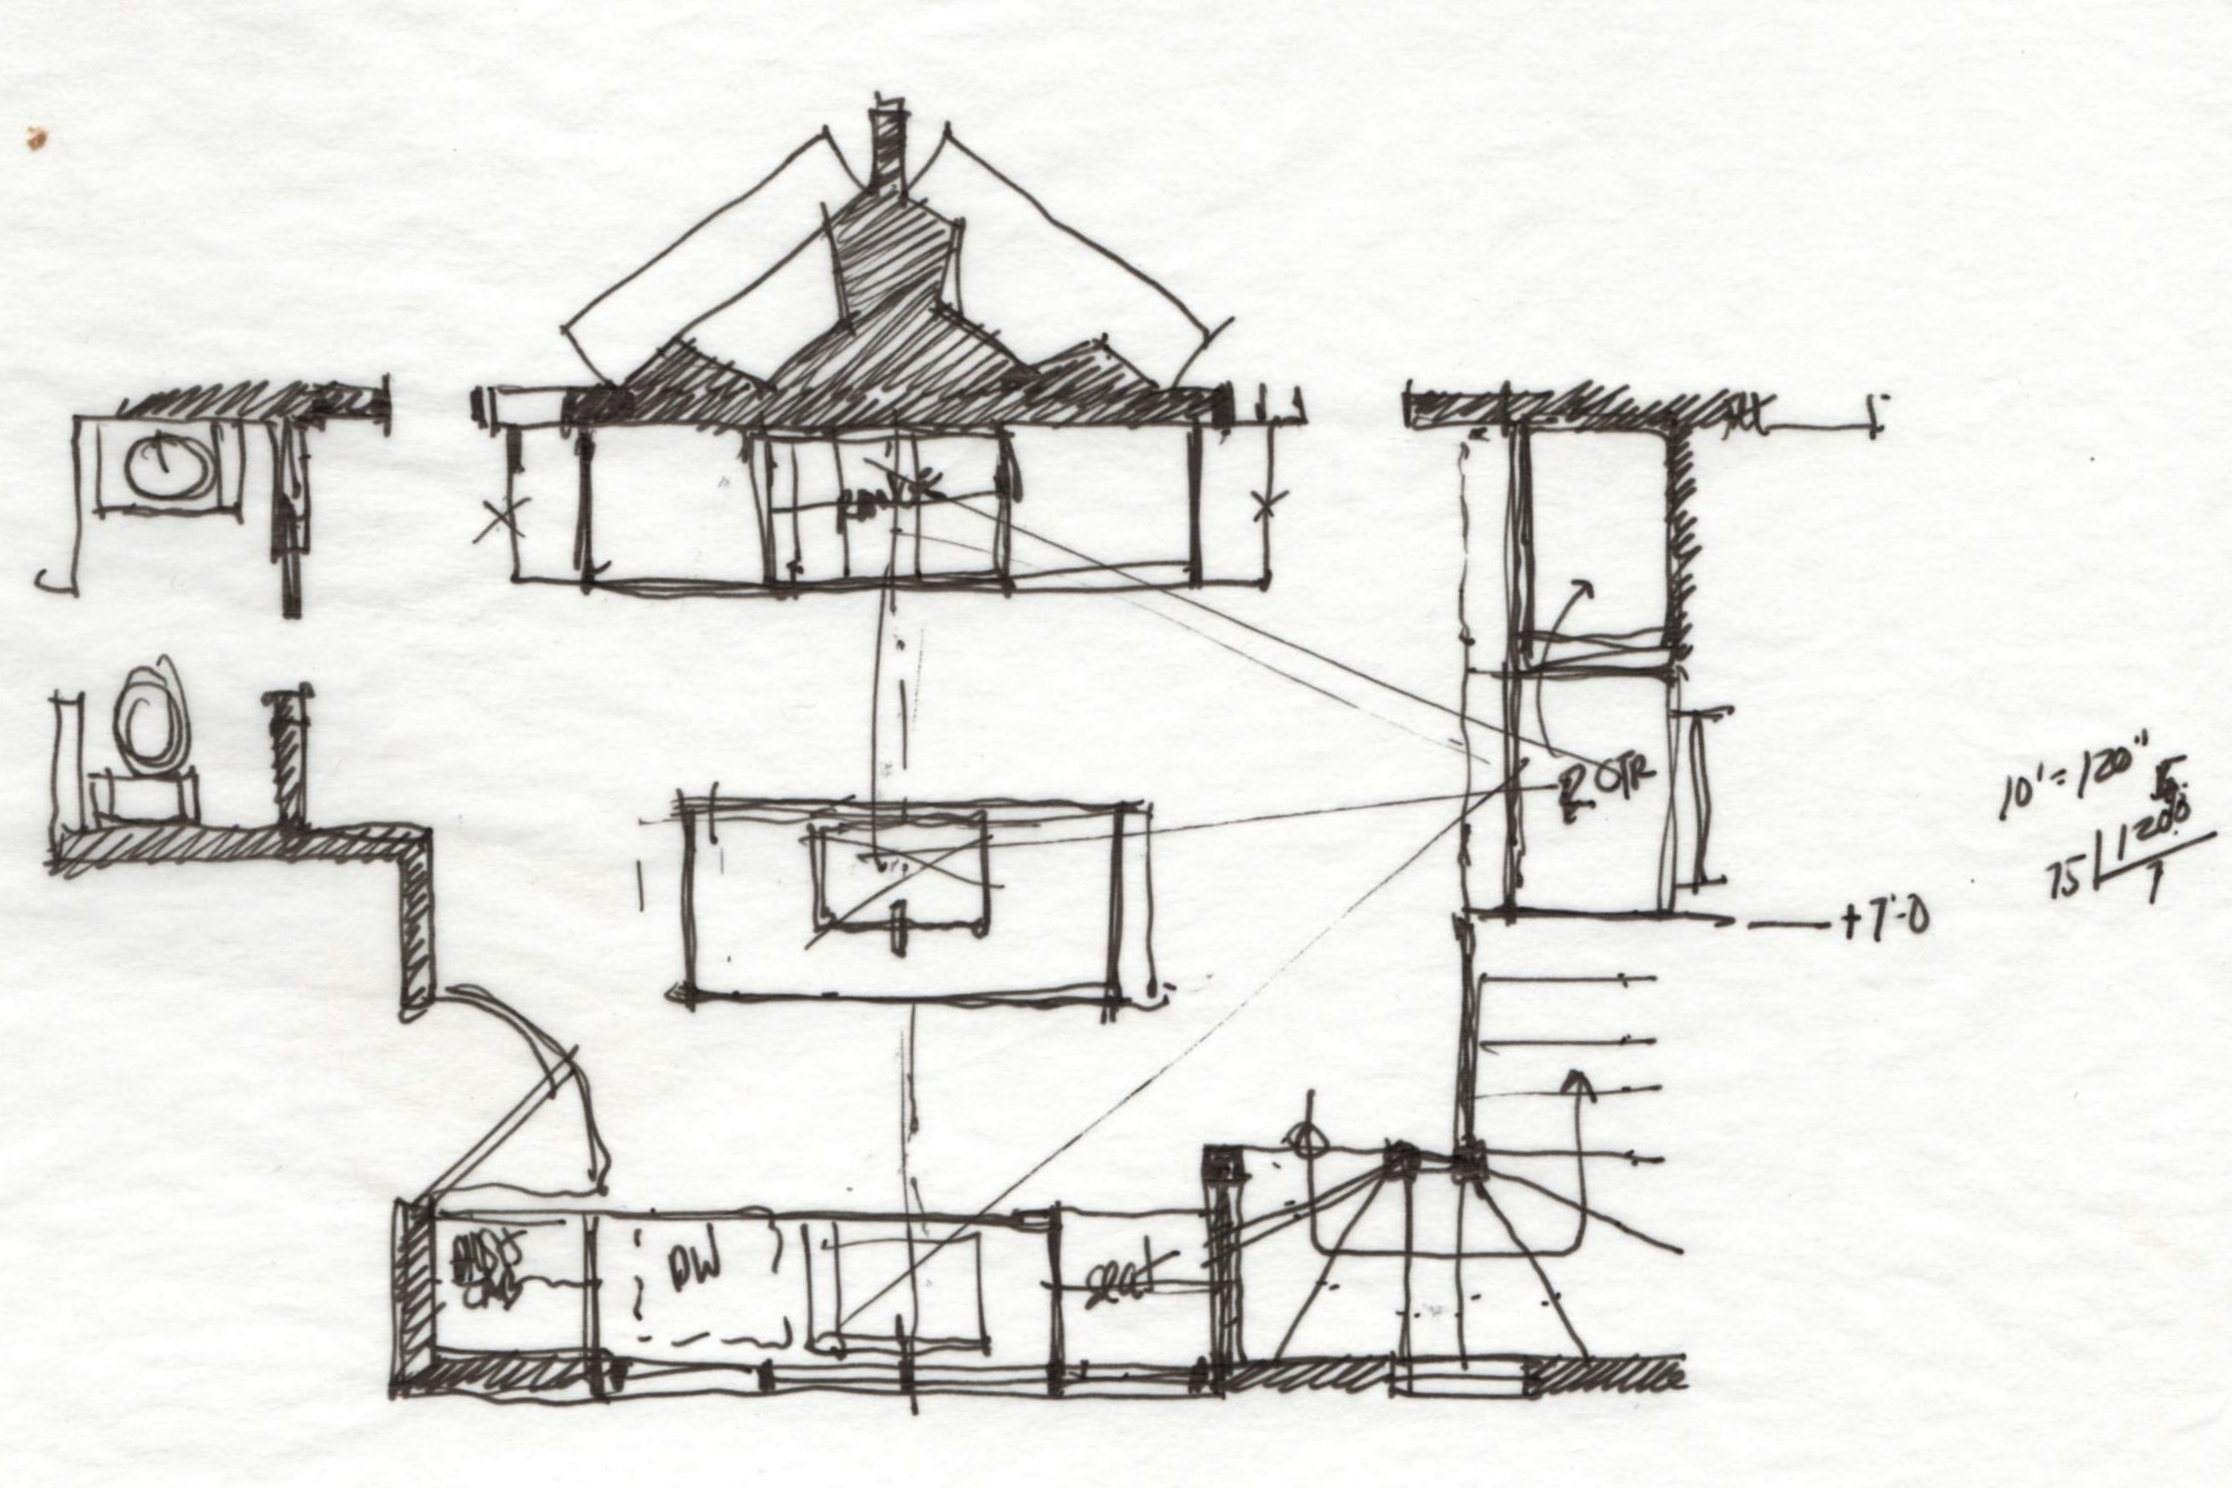 Abers|Plank Residence